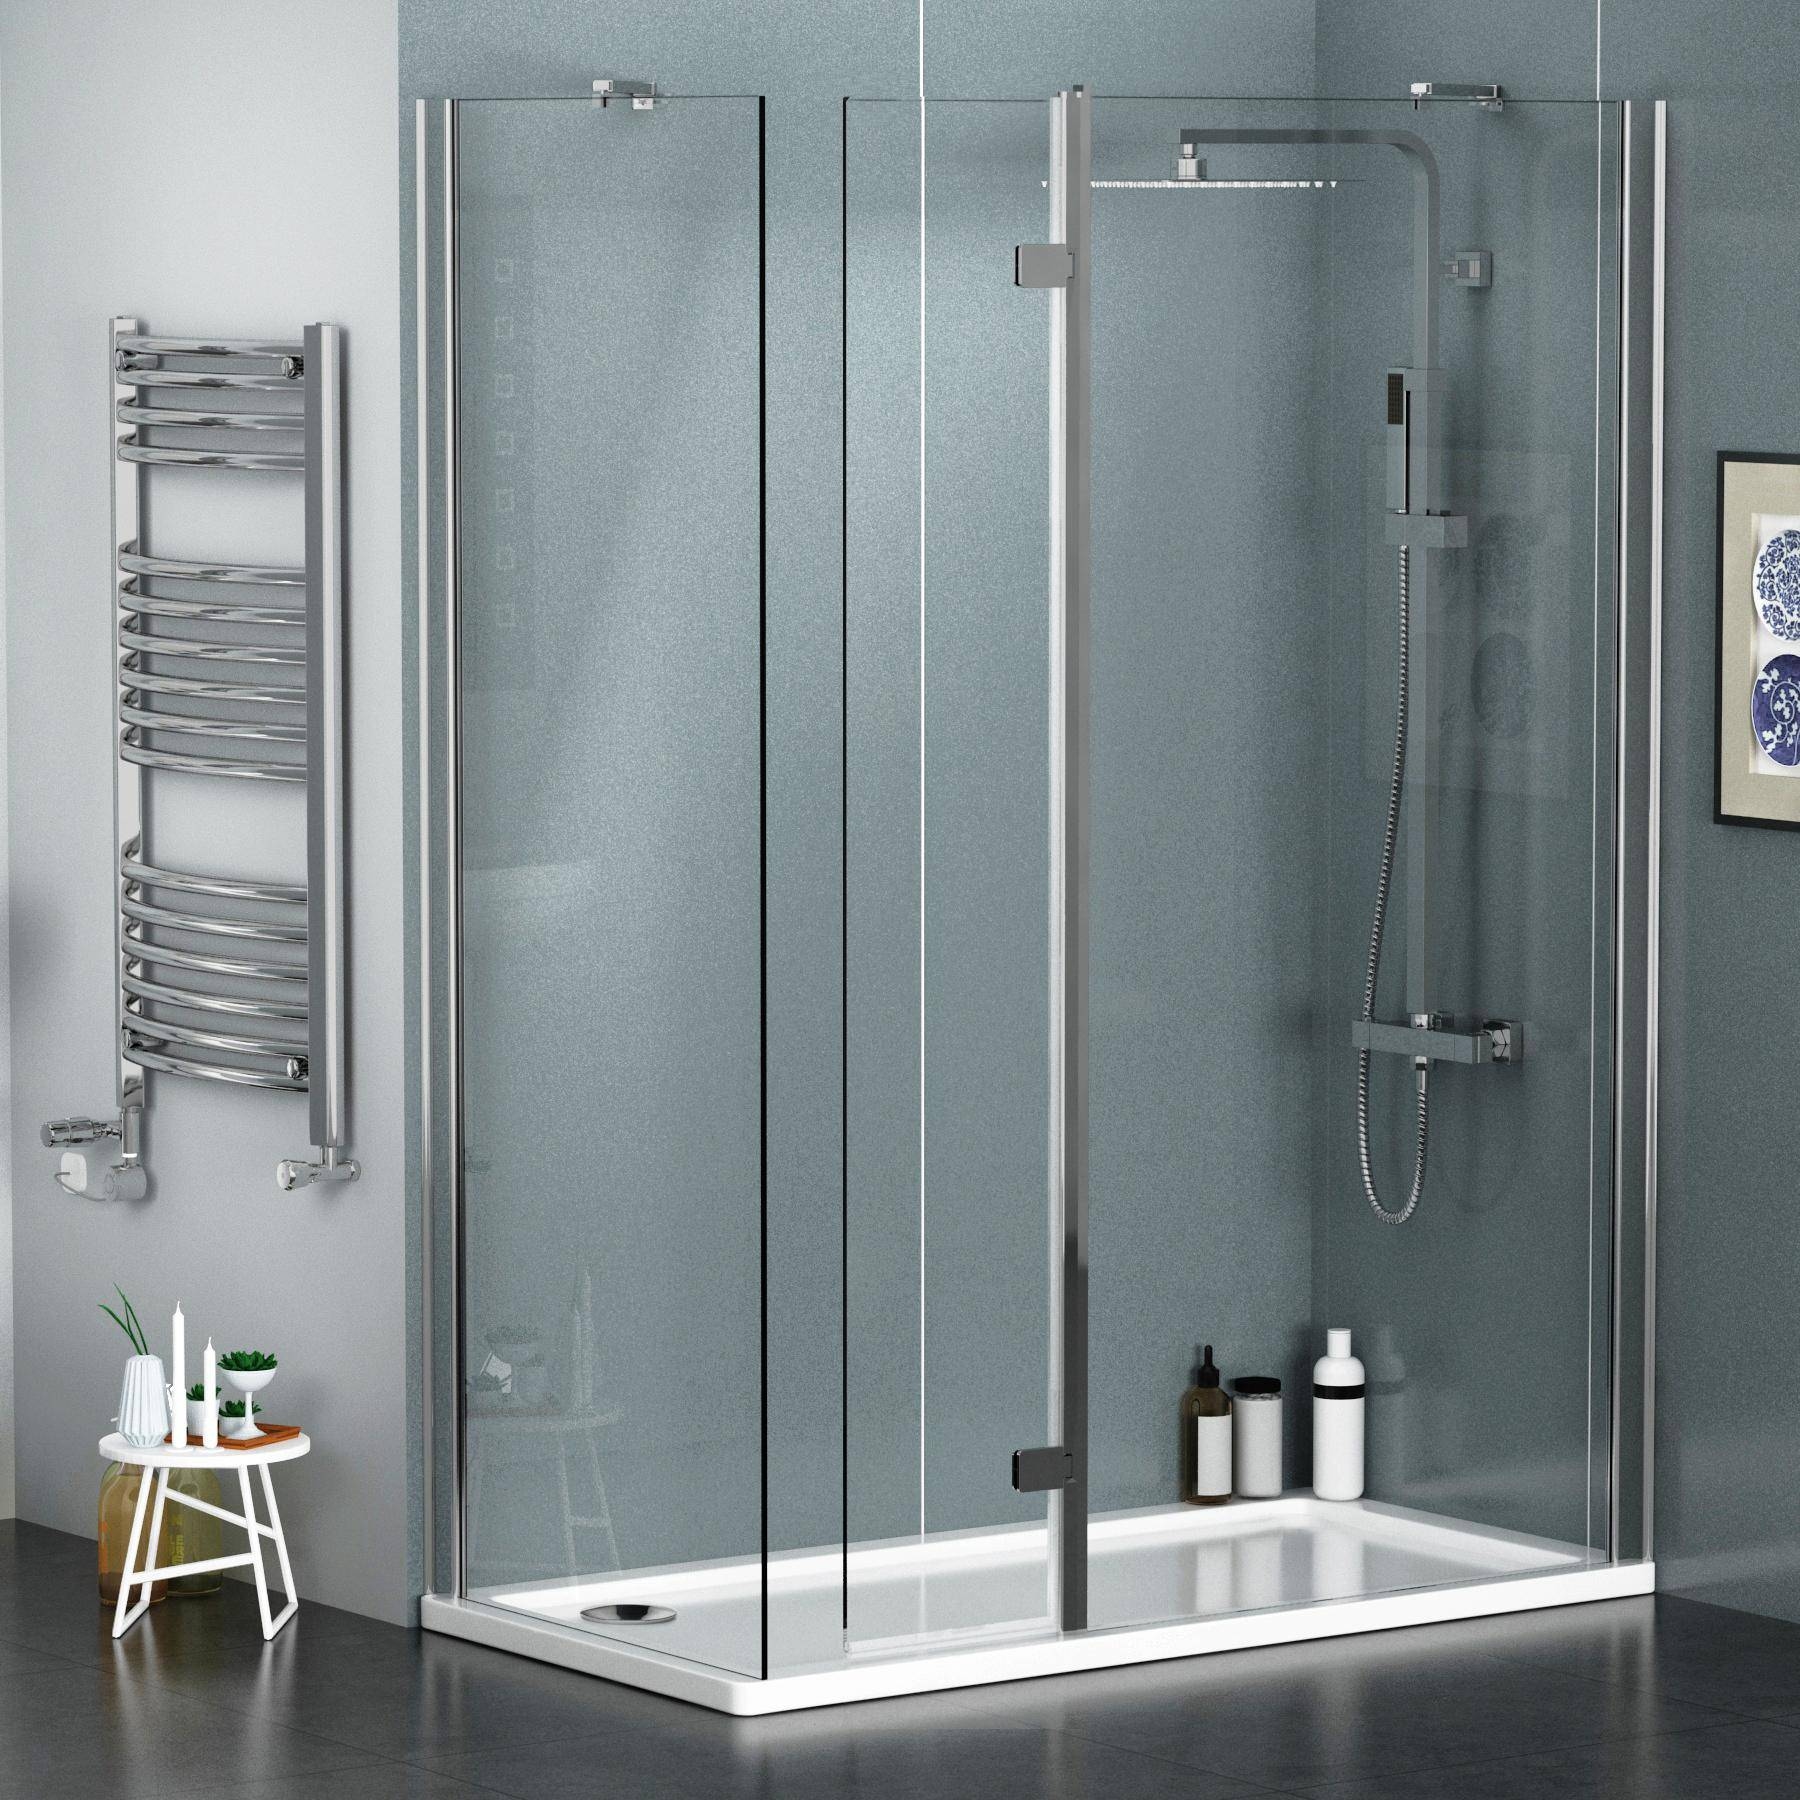 Royal Bathrooms 8mm 1100 x 700mm Walk In Shower Enclosure with Shower Tray + Flipper Panel